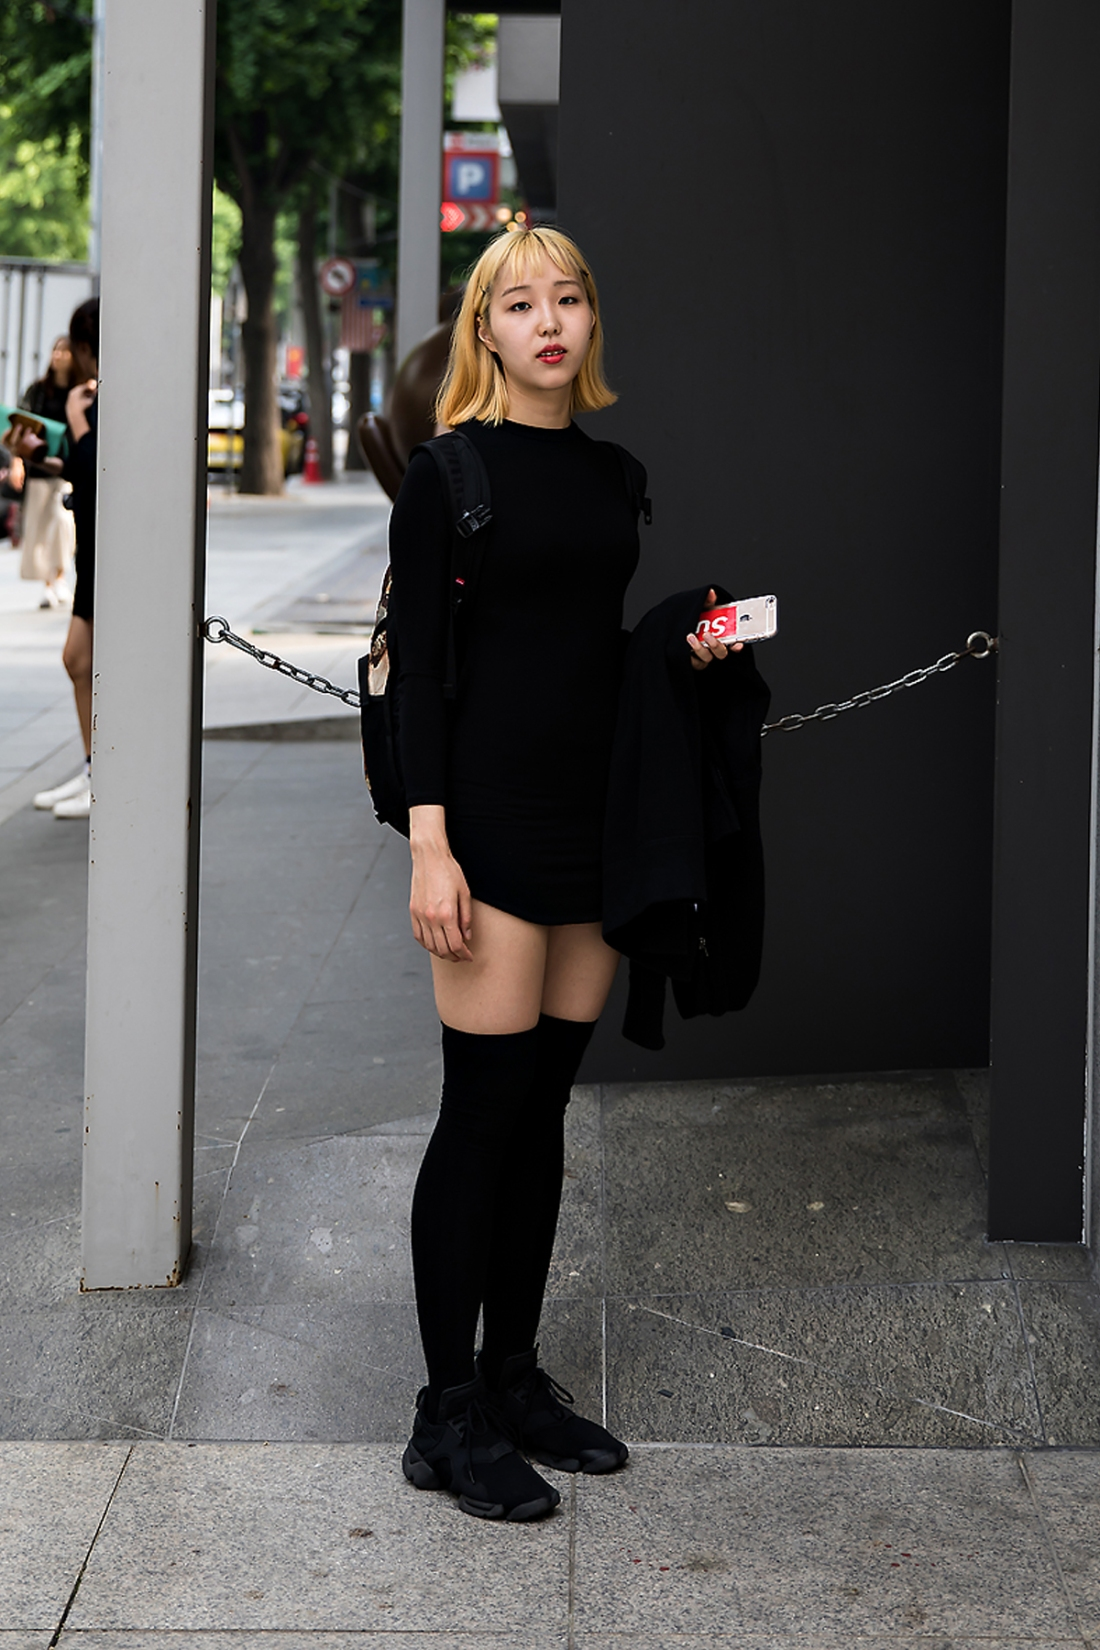 Ha Sojung, Street Fashion 2017 in Seoul